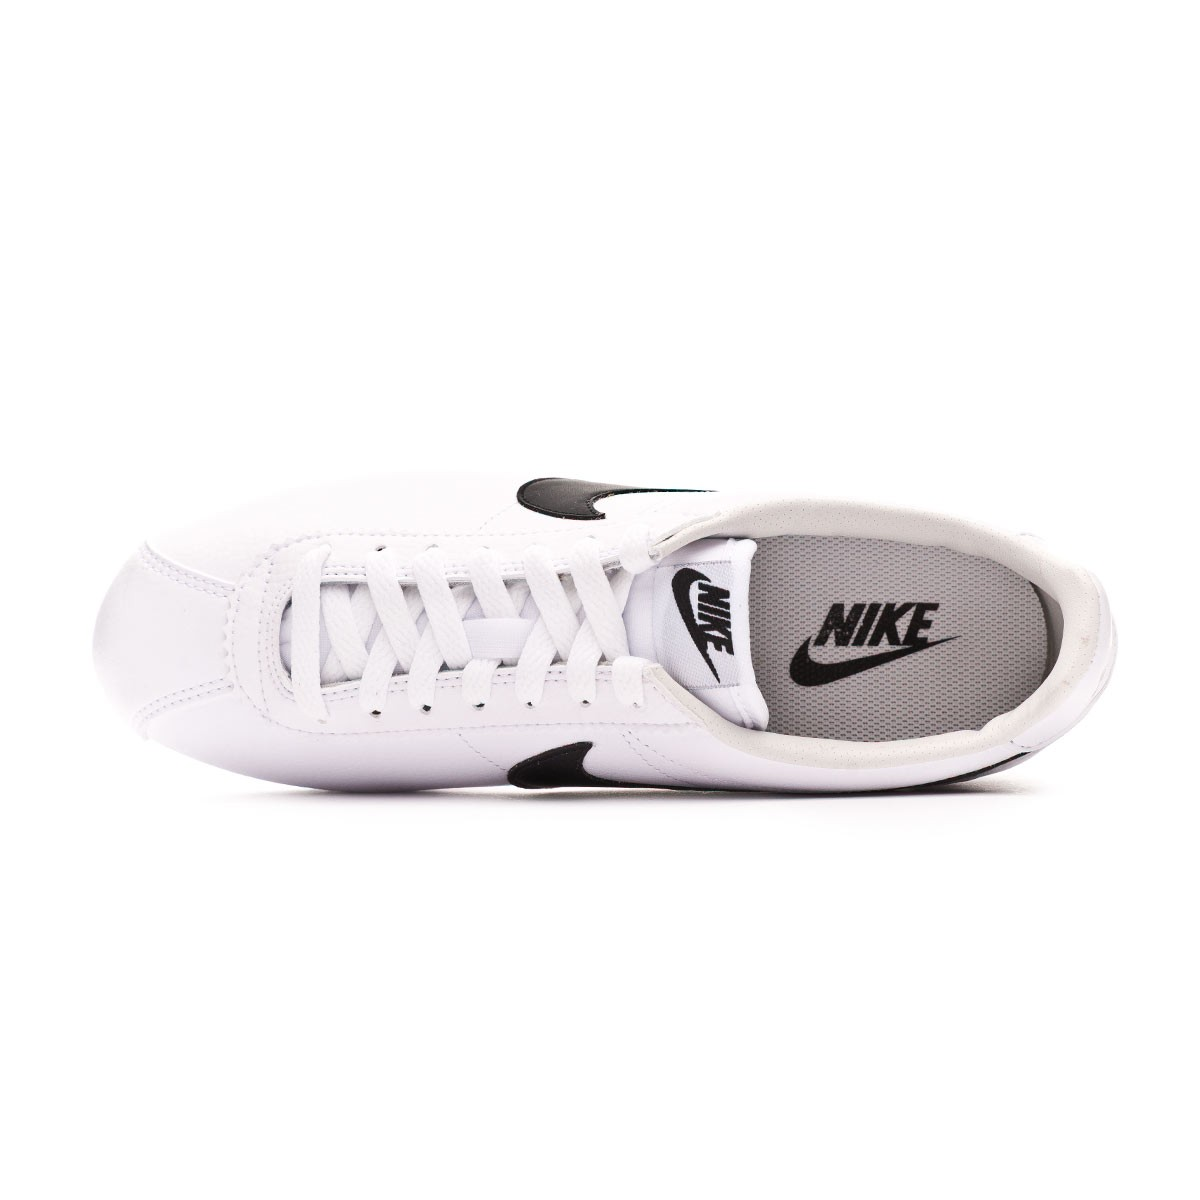 ed0ed5586811d Tenis Nike Classic Cortez Leather 2019 White-Black - Tienda de fútbol  Fútbol Emotion